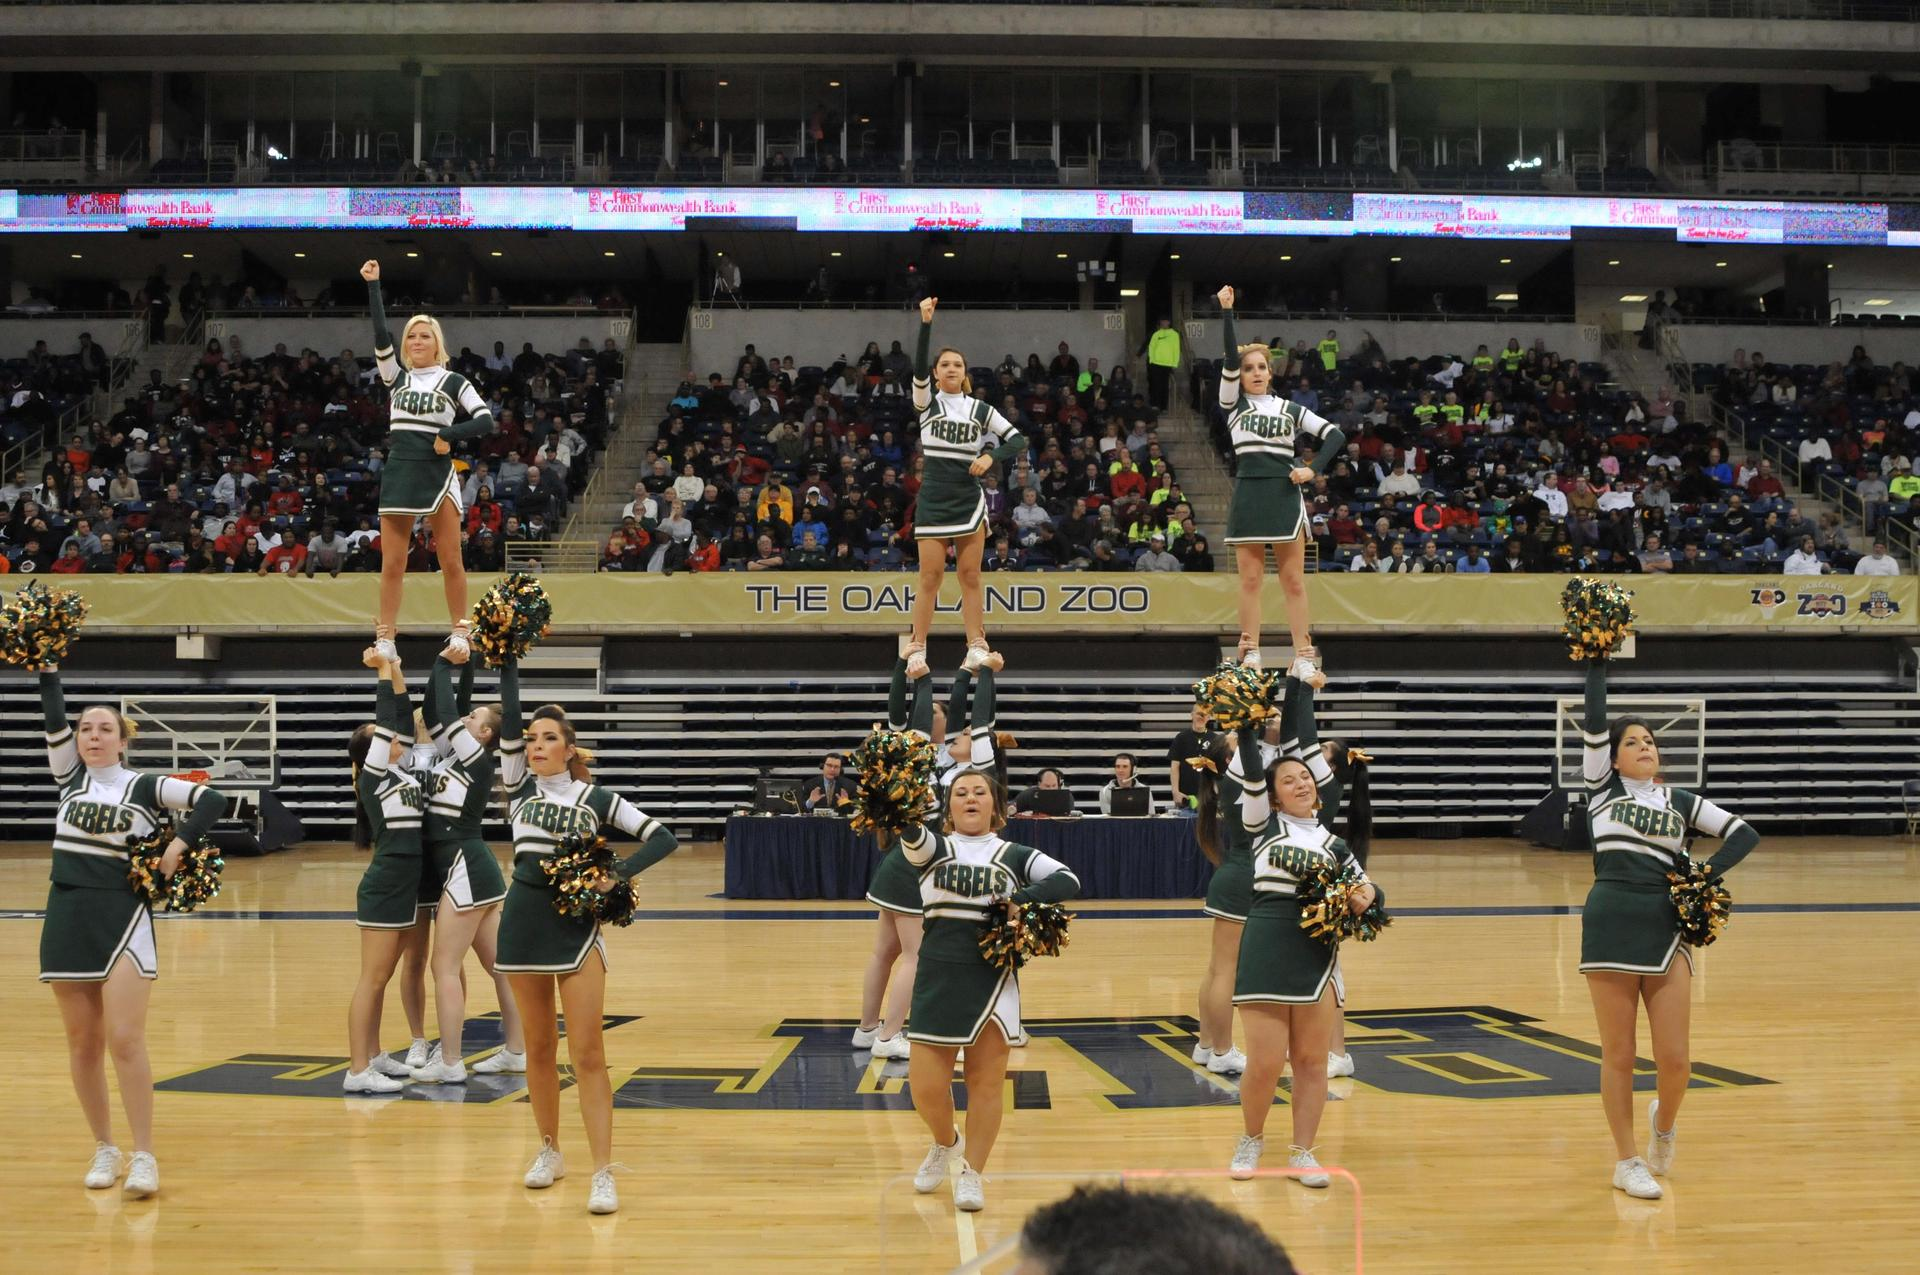 Cheerleaders in action at basketball game